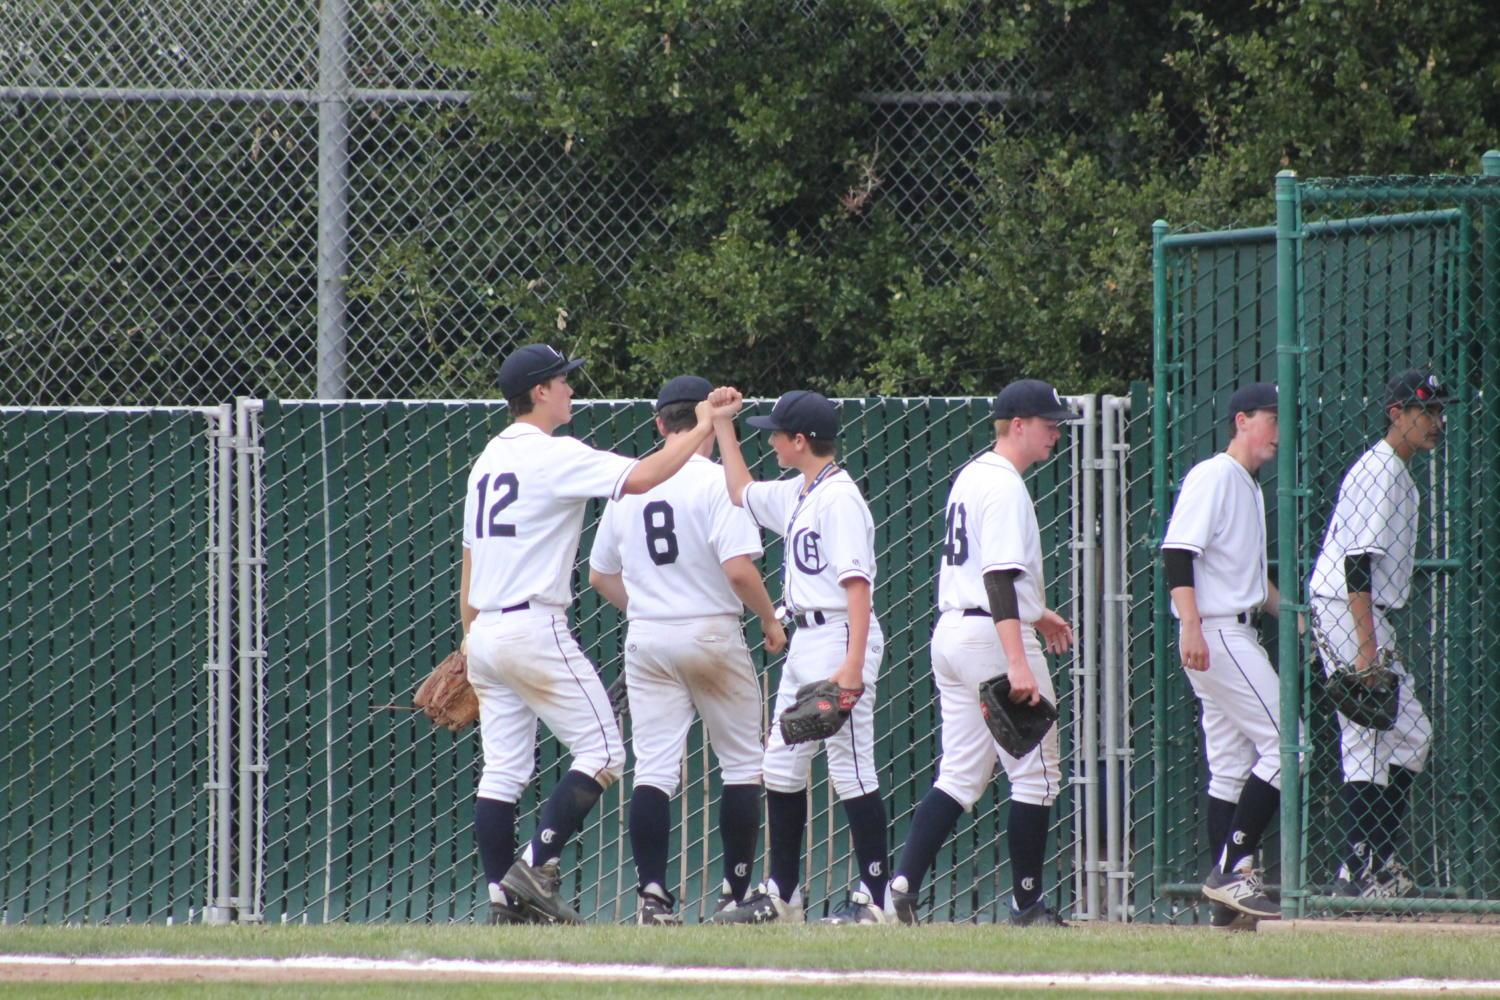 Carlmont teammates congratulate each other on the way to the next inning.